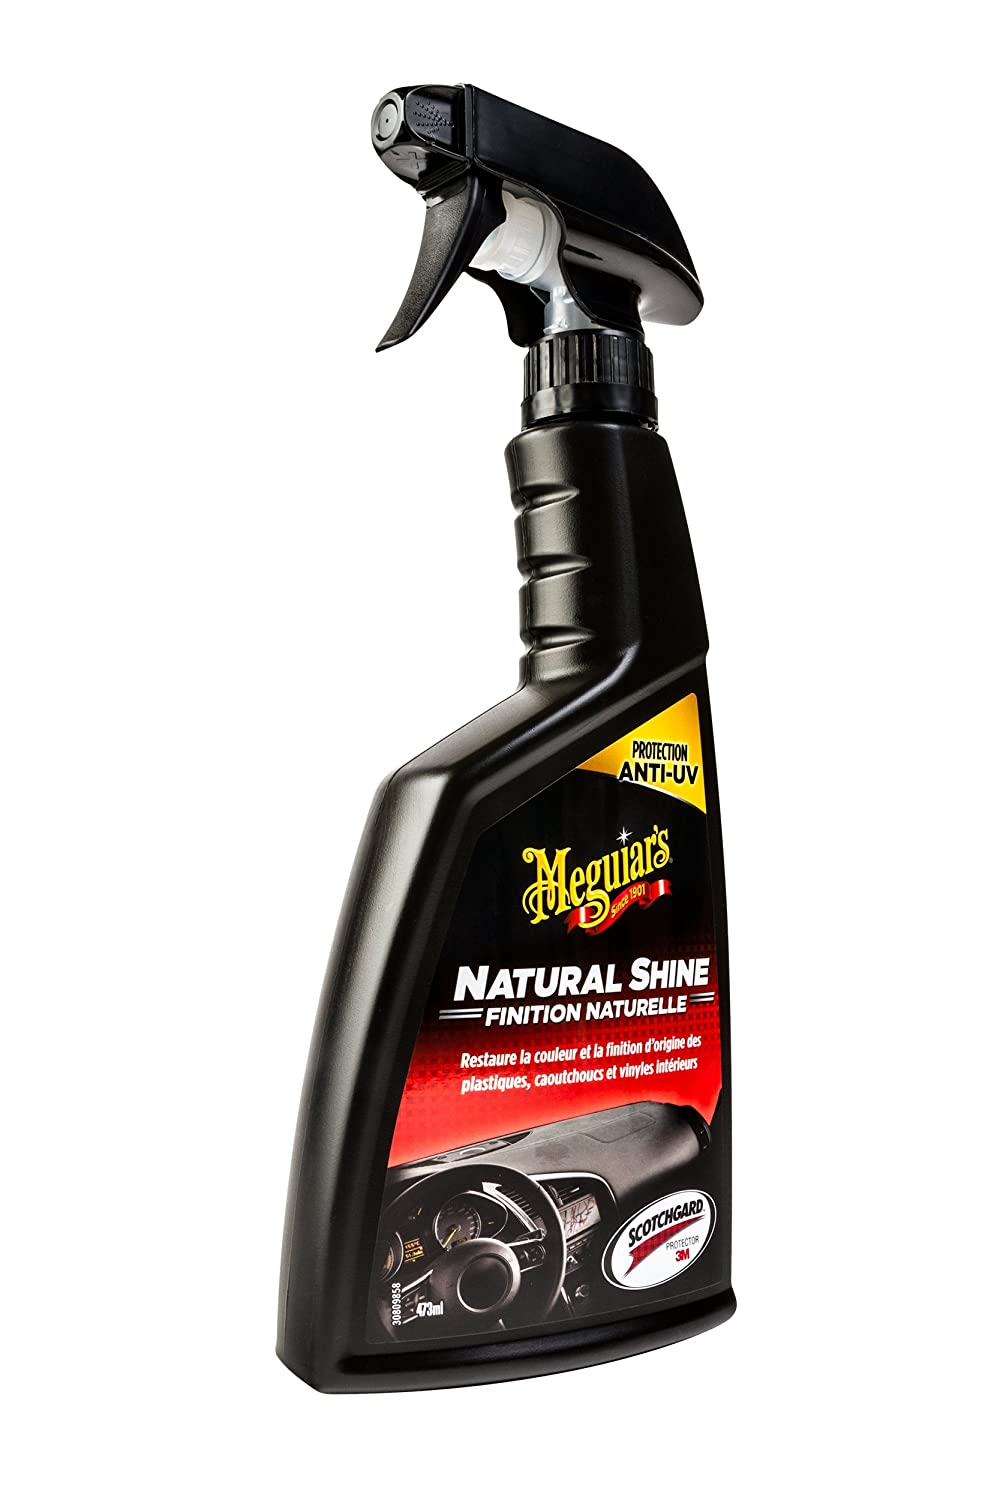 Meguiar's Natural G4116F Shine plá sticos internos Meguiar' s Car Care Products